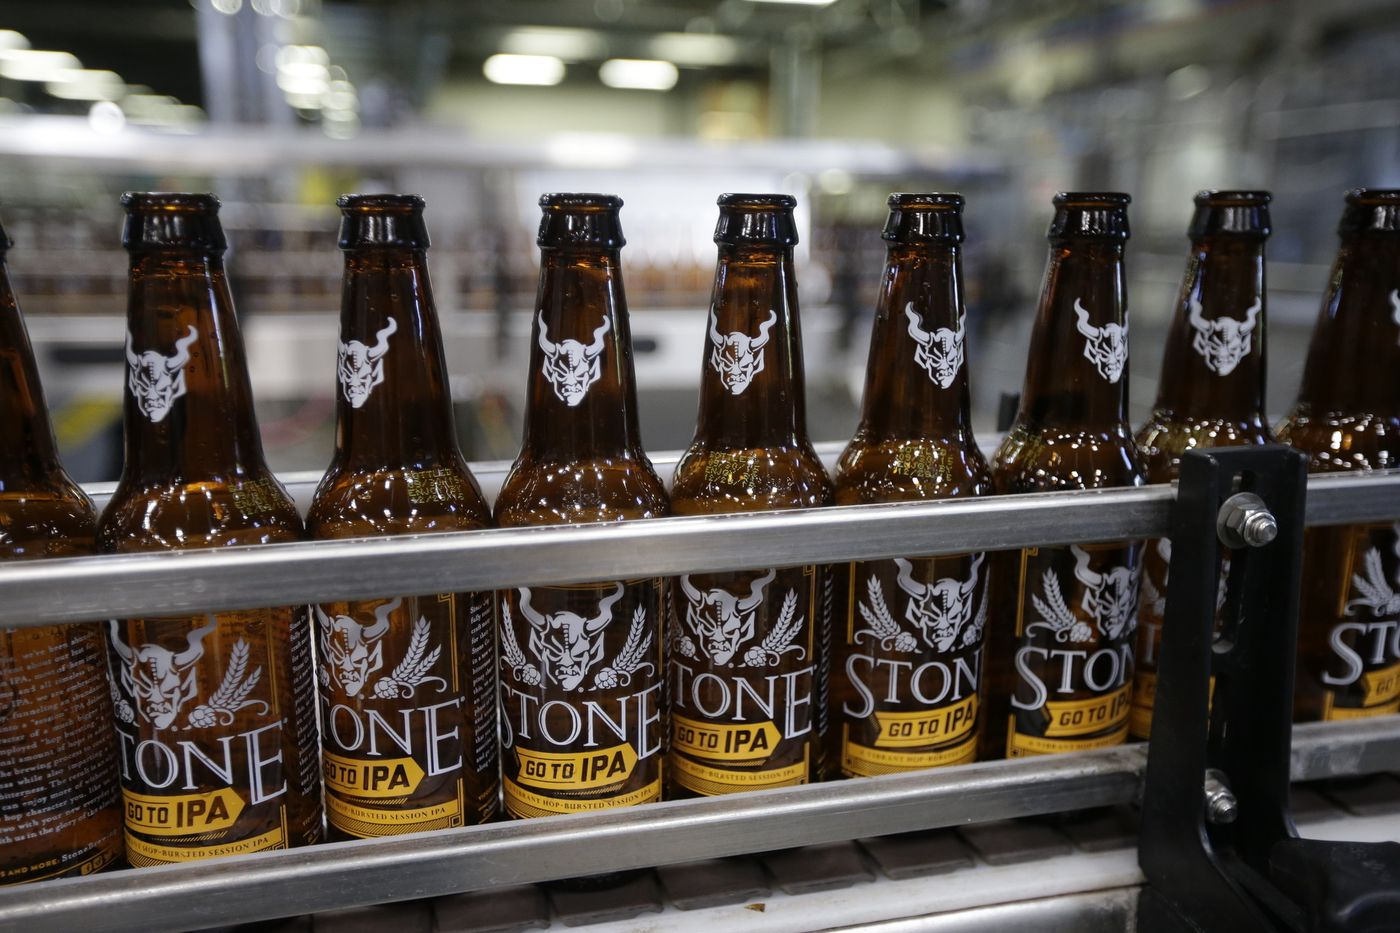 """Stone Brewing's """"Go To IPA"""" being bottled.   Credit: latimes.com"""